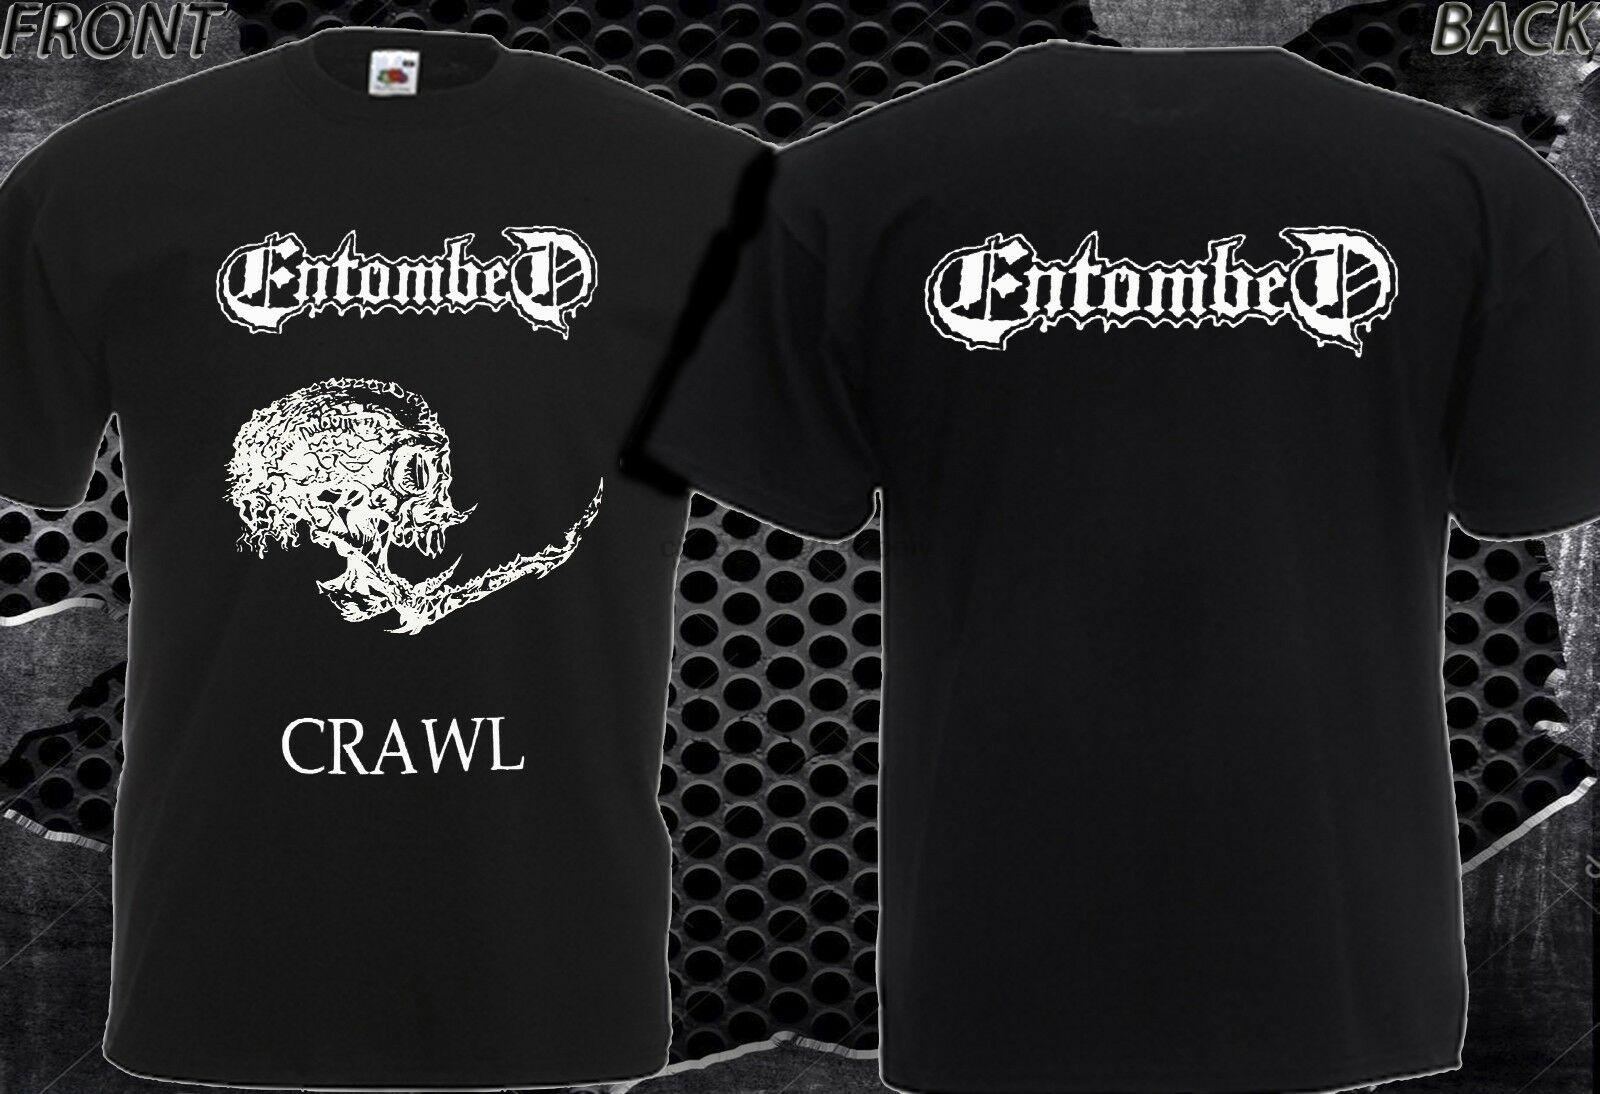 Nouveau T-shirt Entombed Crawl DTG Printed Tee S 7XL